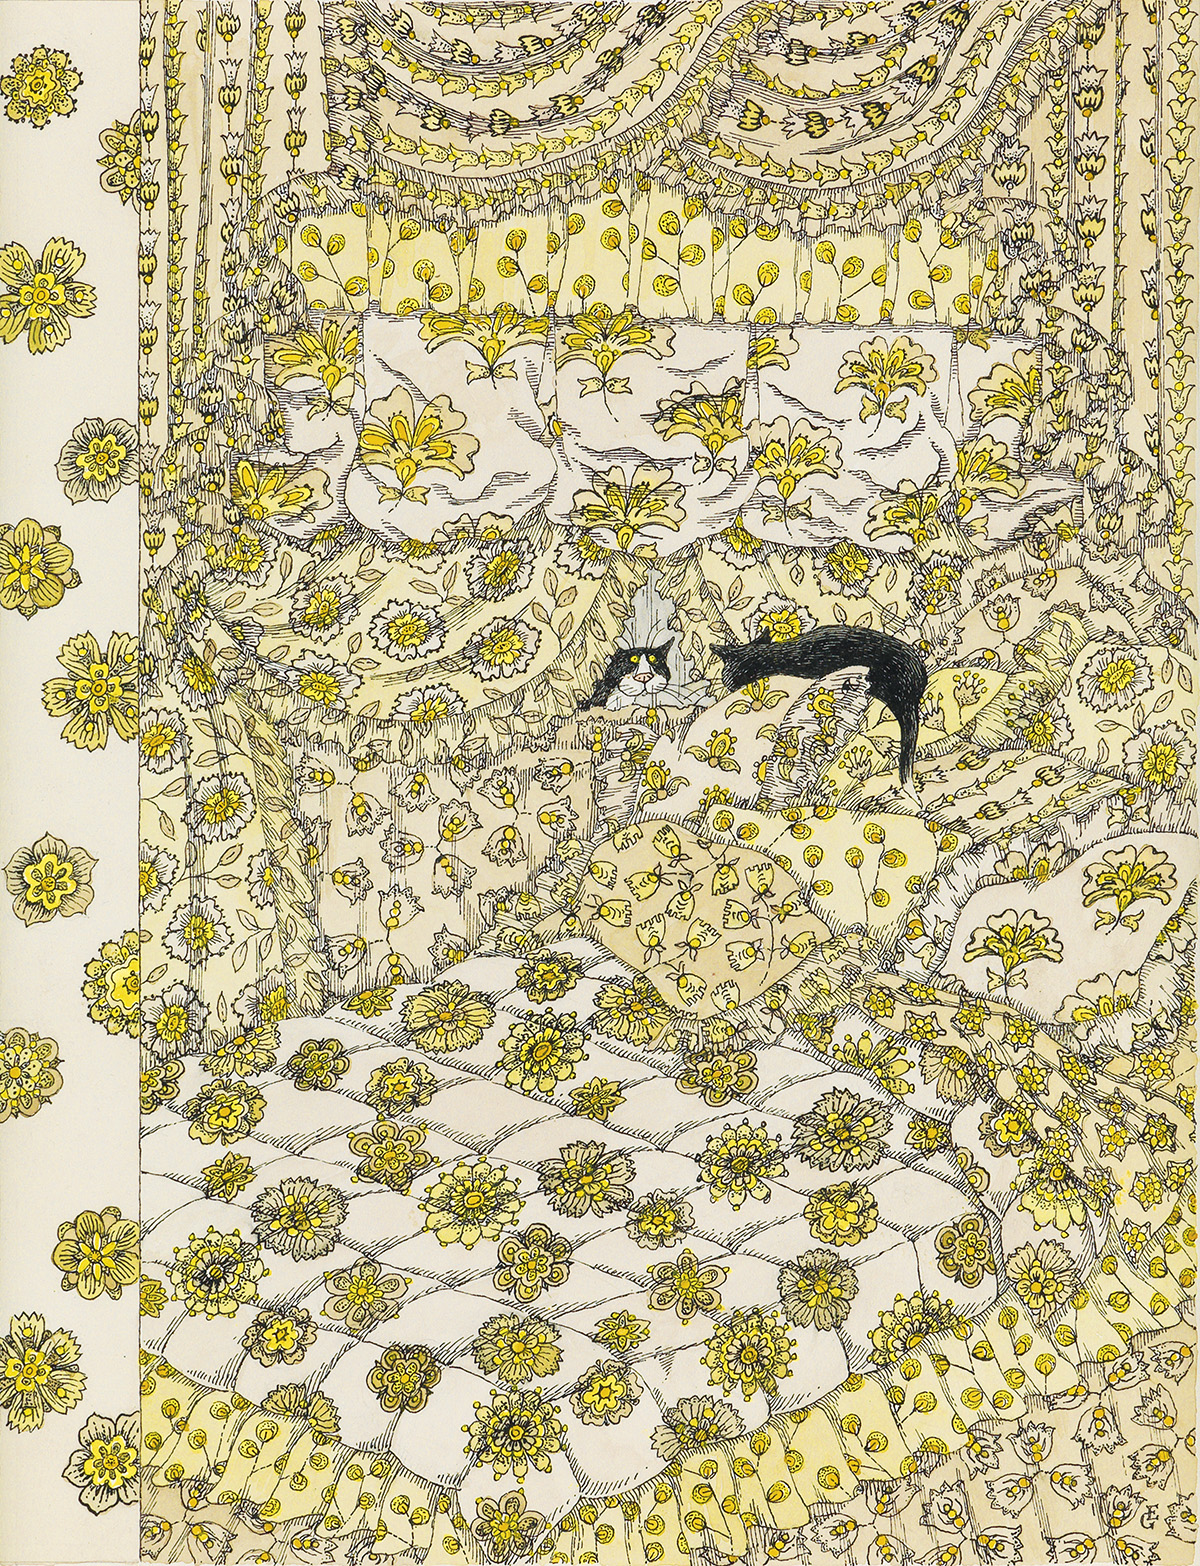 EDWARD-GOREY-(THE-NEW-YORKER--COVER)-Cat-Fancy